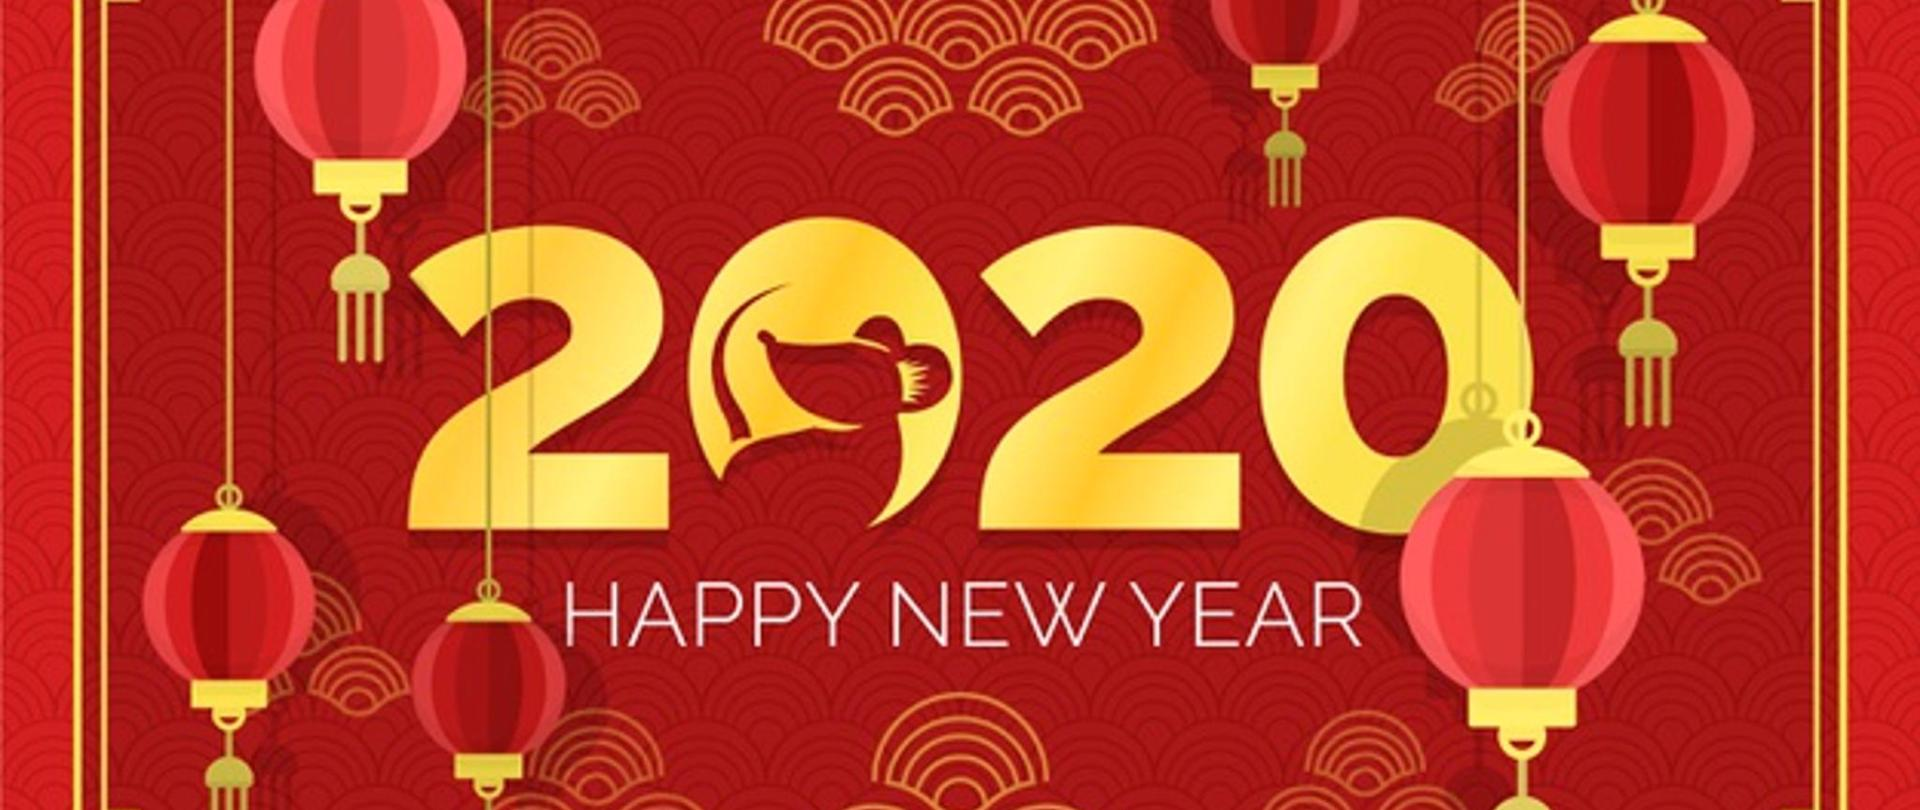 chinese-new-year-flat-design_23-2148348654.jpg